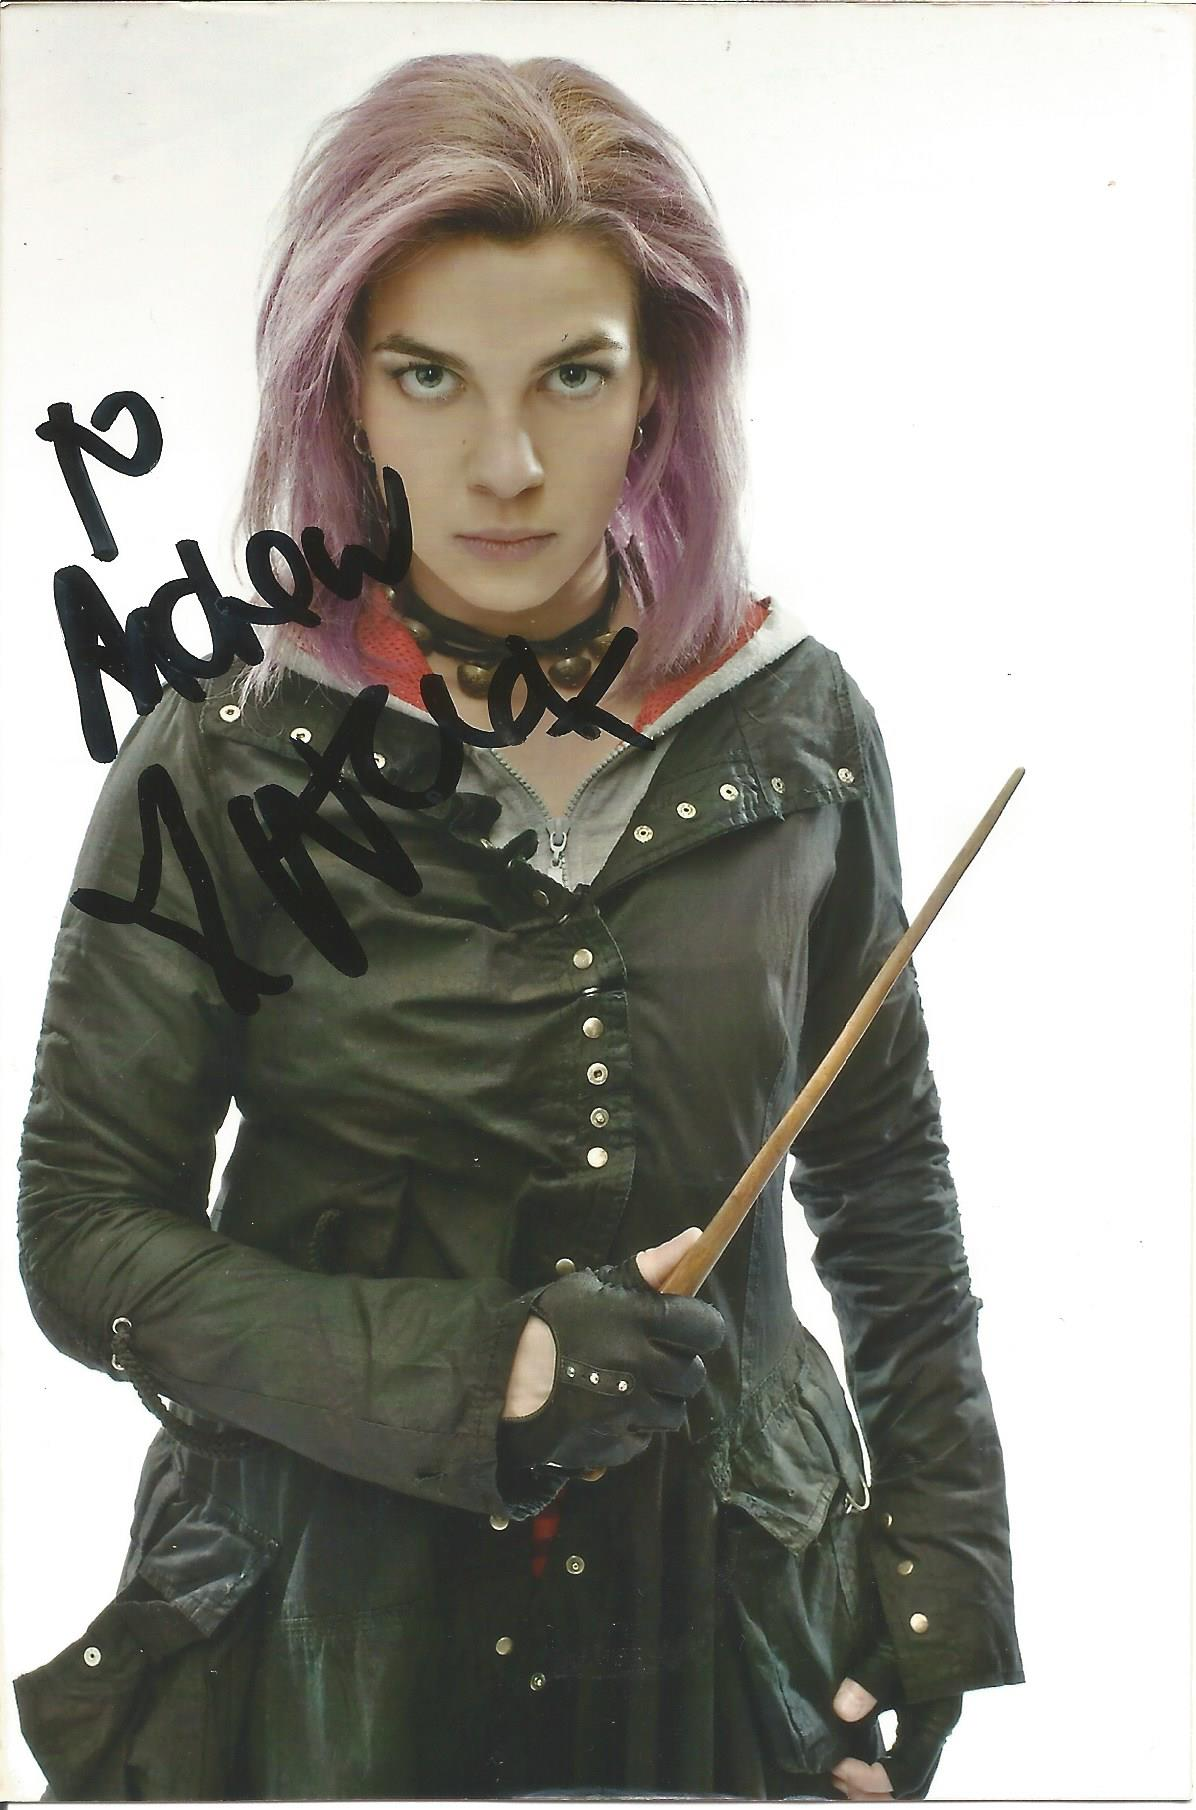 Actress Natalia Tena signed 6x4 in character as Nymphadora Tonks from the Harry Potter film series